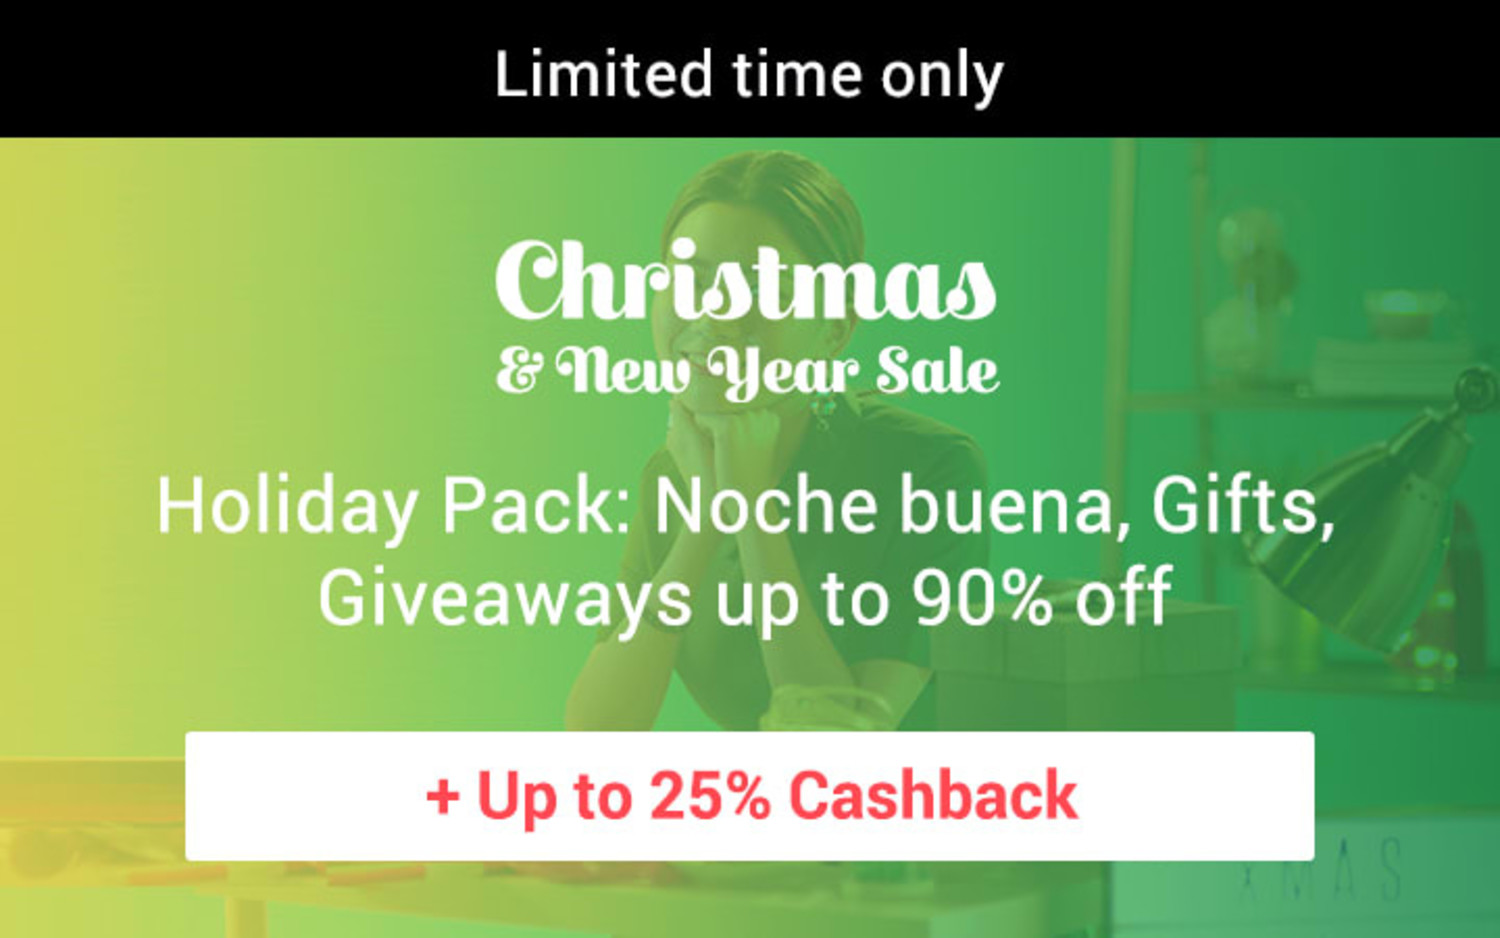 Christmas & New Year: Limited time only Holiday Pack: Noche buena, Gifts, Giveaways up to 90% off + Up to 25% Cashback